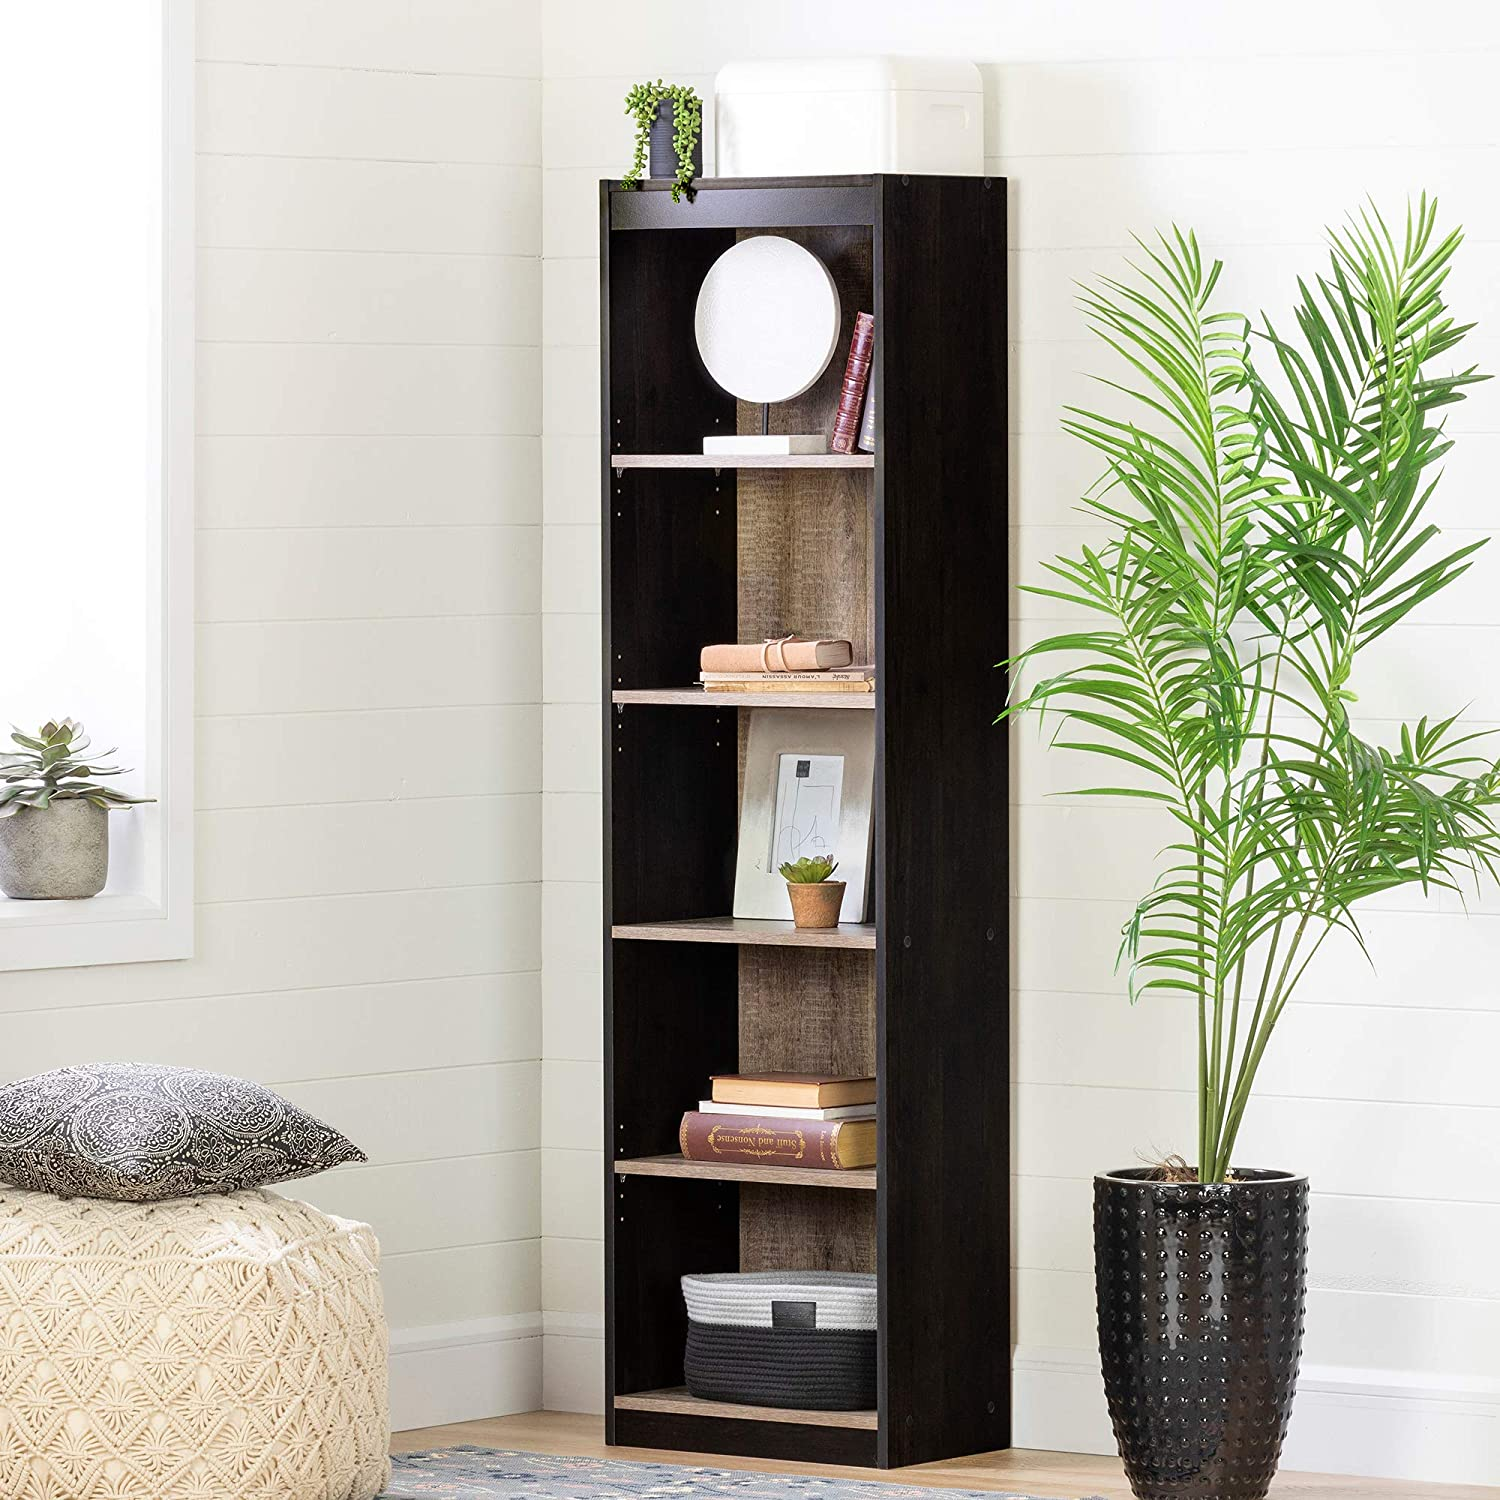 South Shore Furniture Axess 5-Shelf Narrow Bookcase, Weathered Oak and Ebony